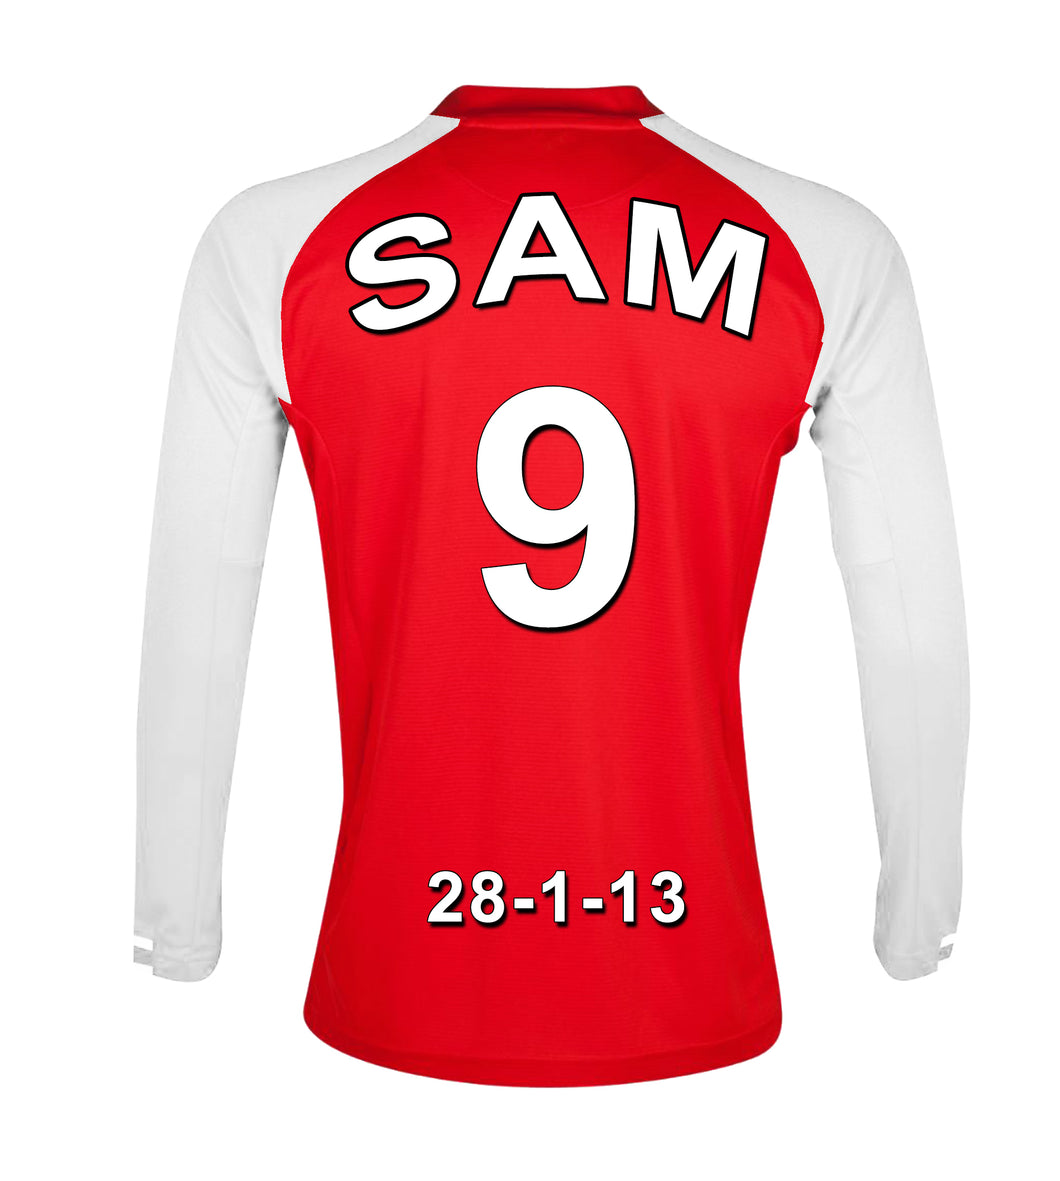 premium selection 8d5f8 1e600 Arsenal Personalised Football Shirt Canvas